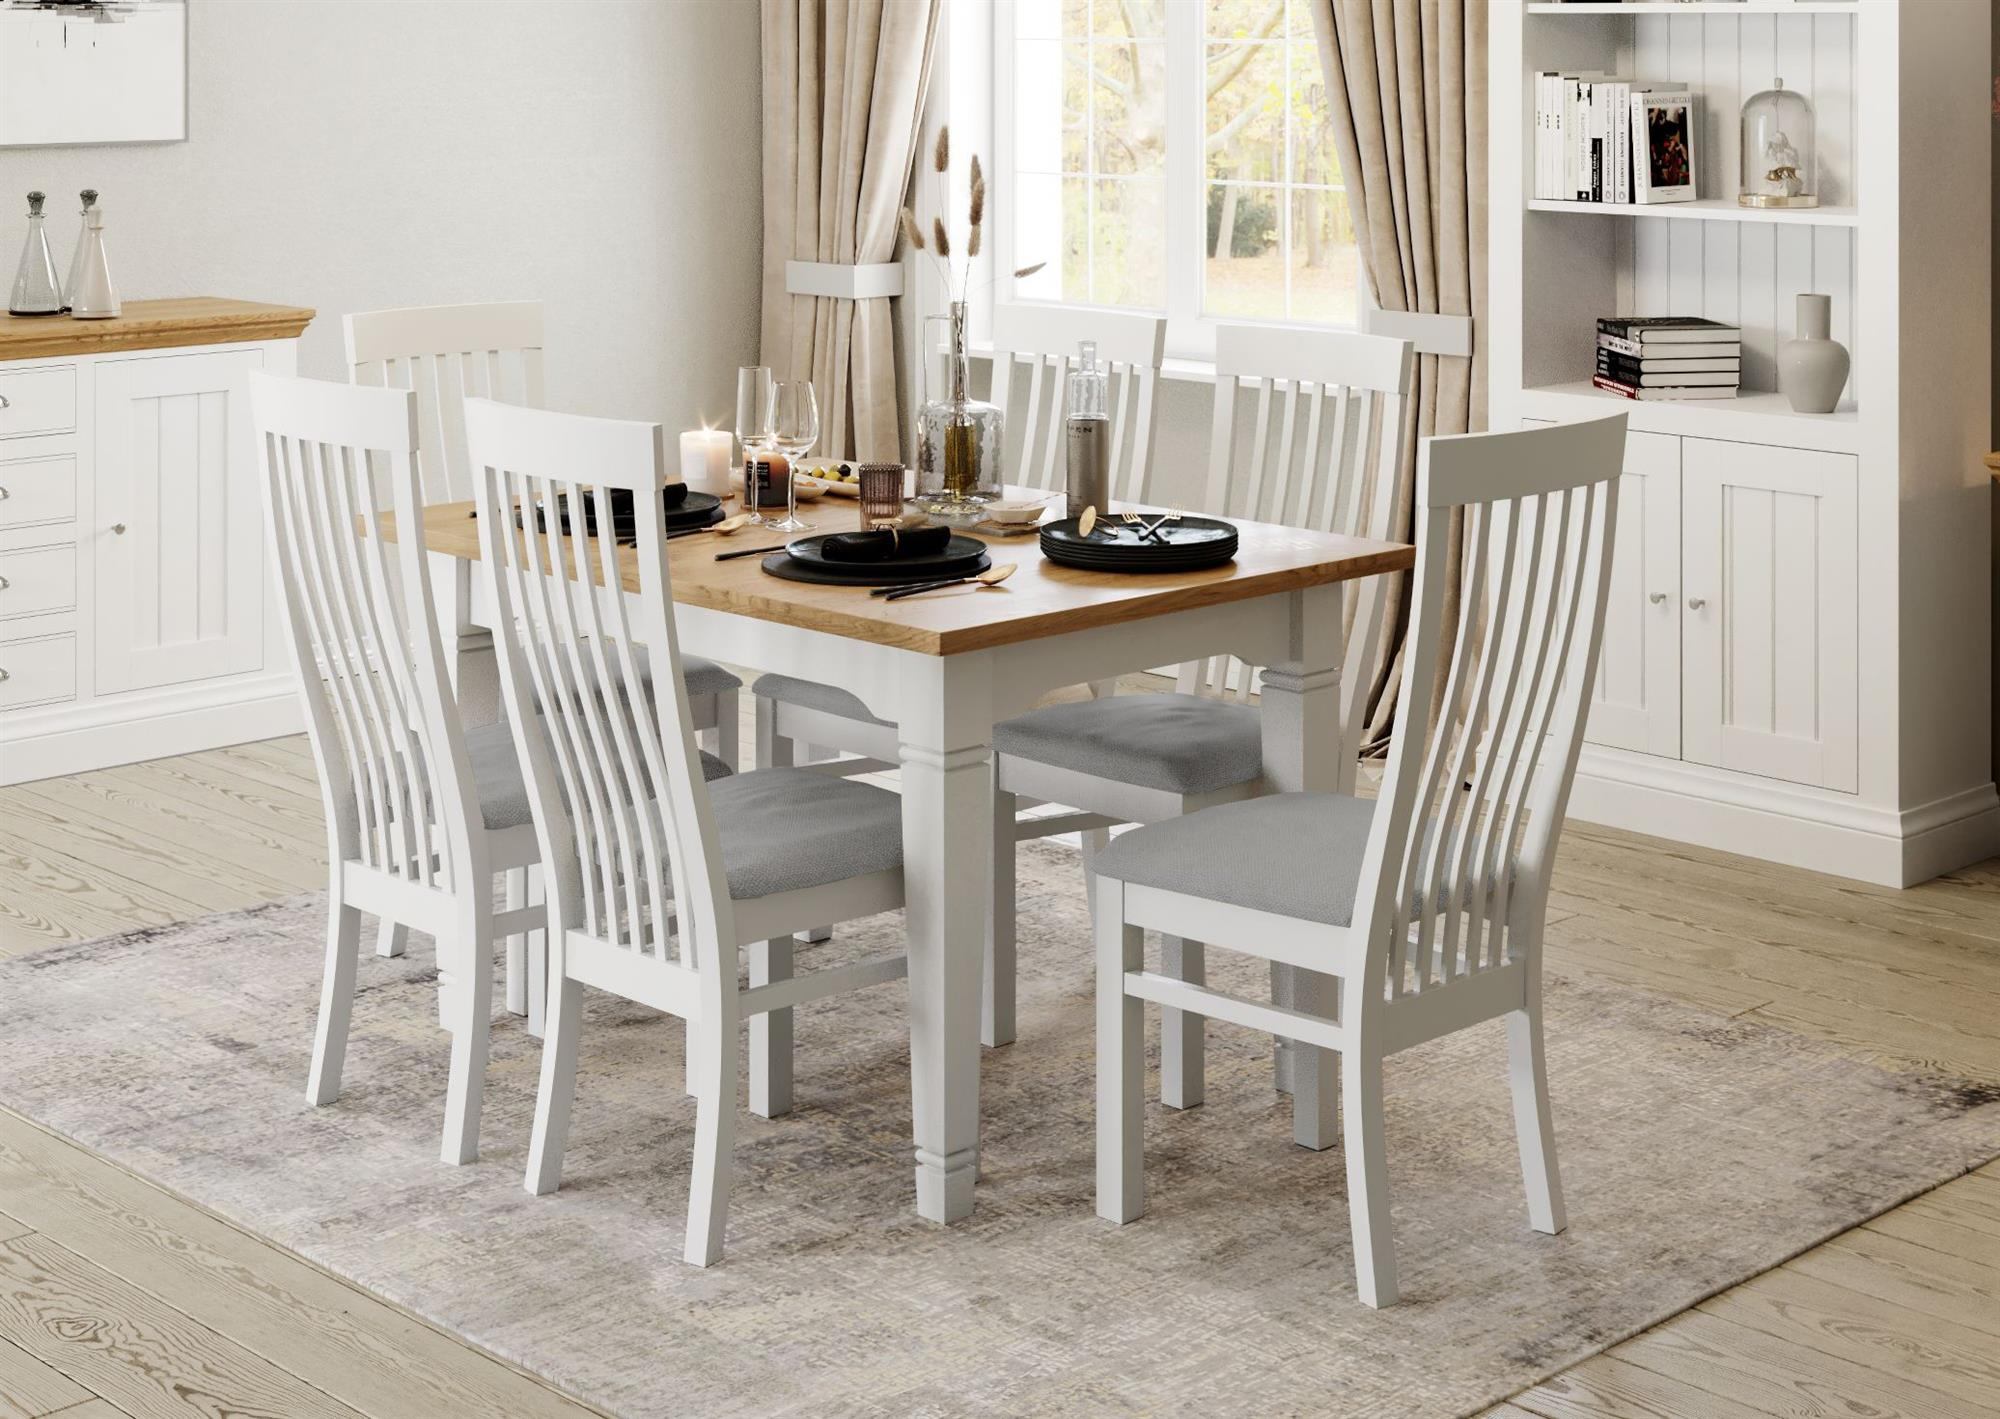 Coelo - Extending Dining Table with 4 Chairs